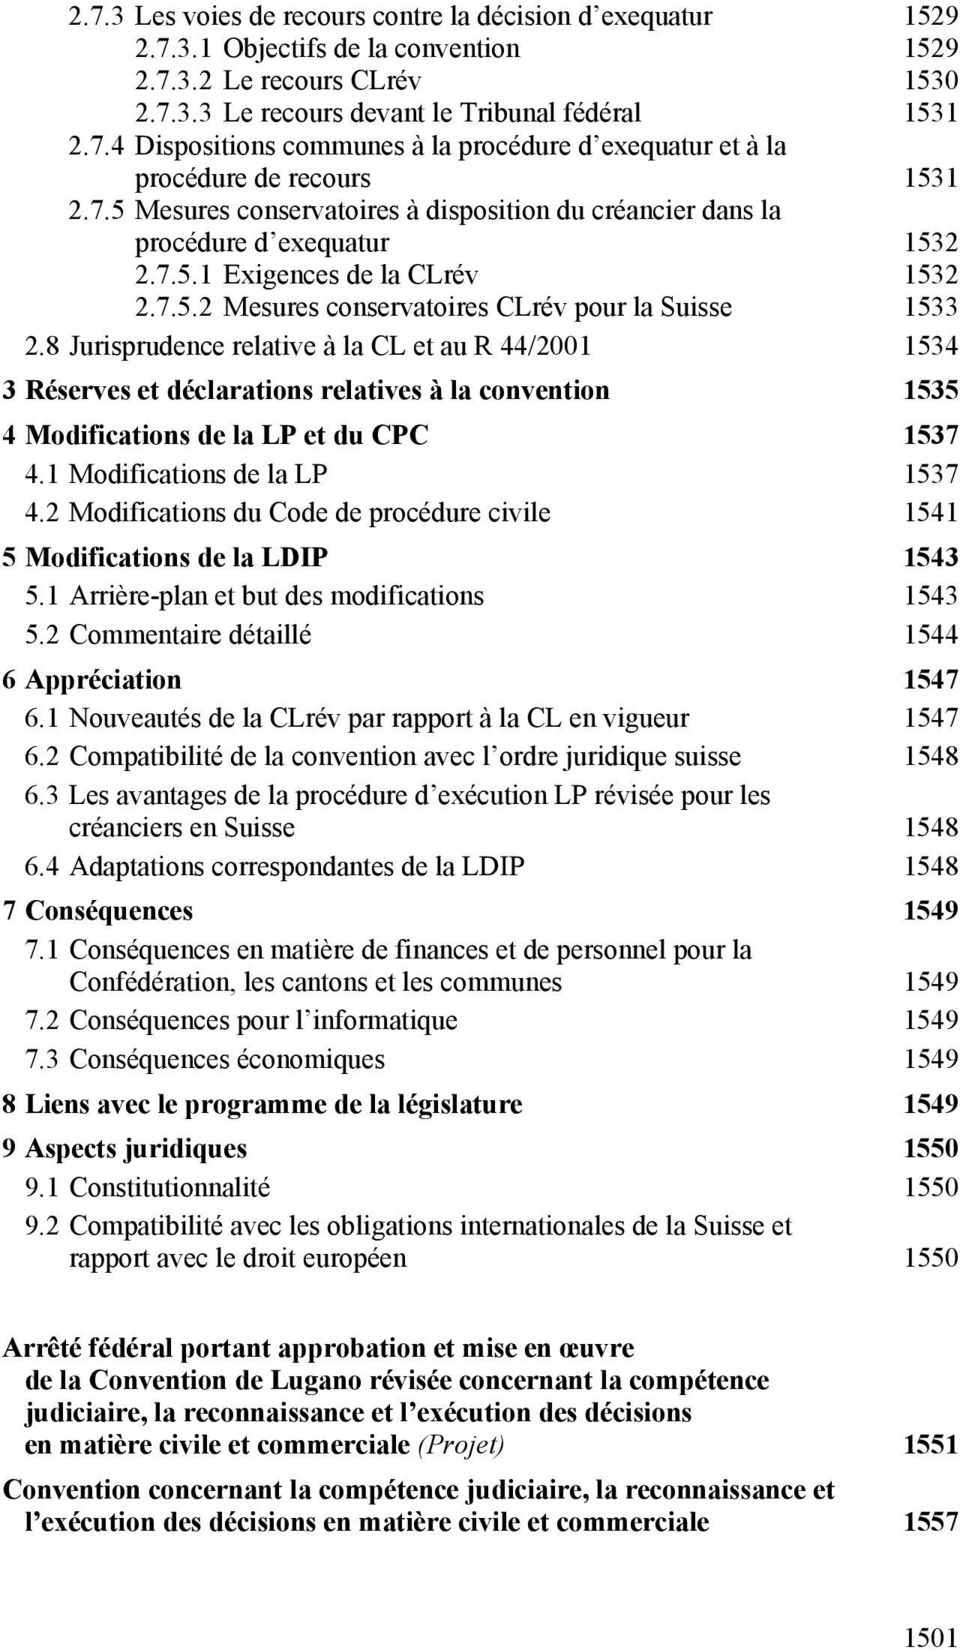 8 Jurisprudence relative à la CL et au R 44/2001 1534 3 Réserves et déclarations relatives à la convention 1535 4 Modifications de la LP et du CPC 1537 4.1 Modifications de la LP 1537 4.